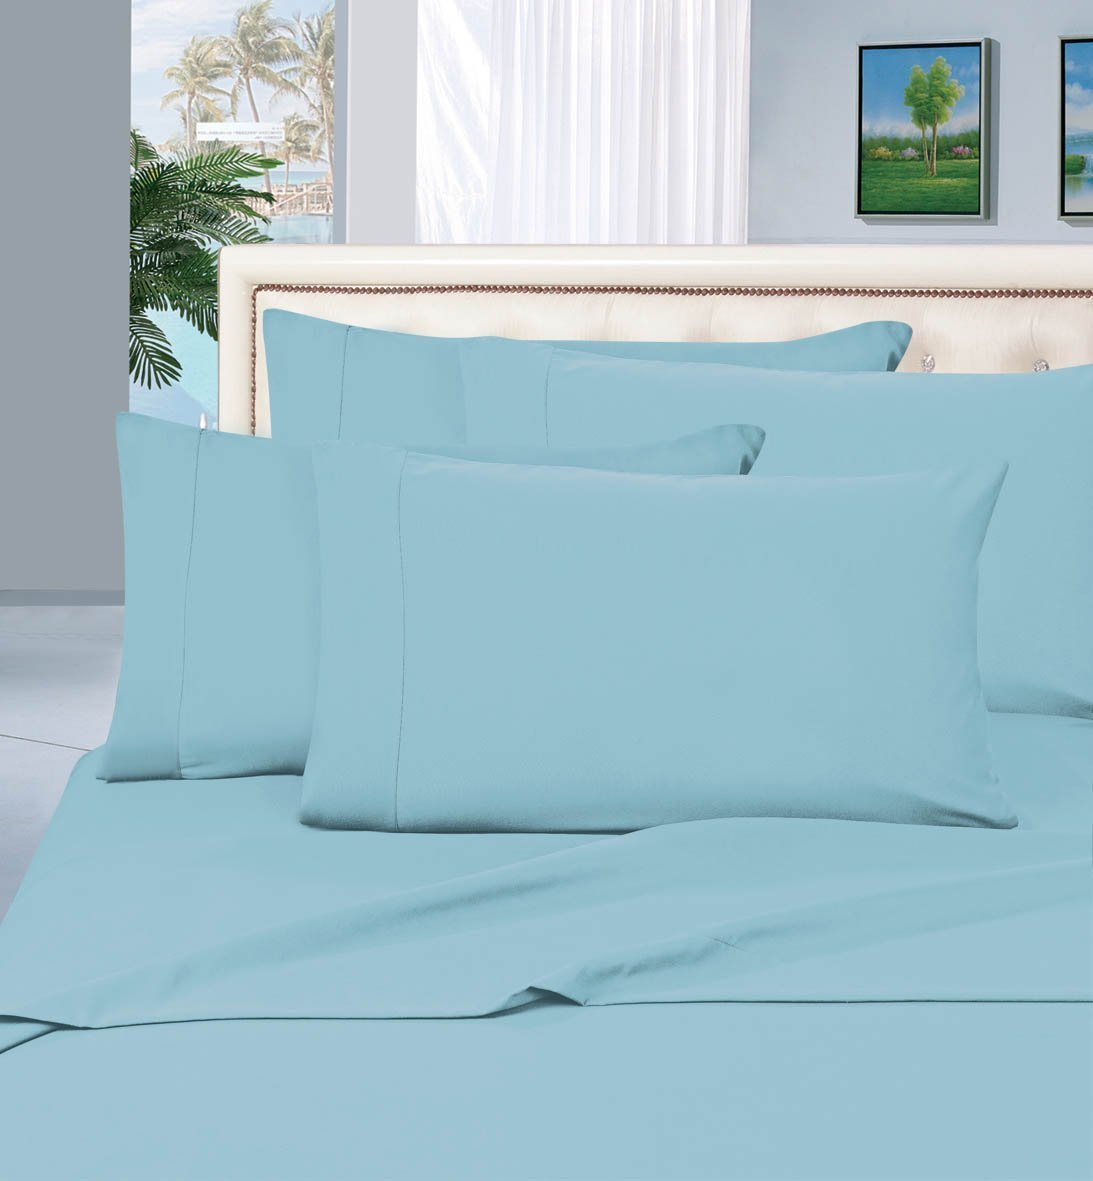 #1 Best Seller Luxury Pillowcases on Amazon! Highest Quality - Elegance Linen® 1500 Thread Count Egyptian Quality Luxury Silky Soft Wrinkle-Resistant 2-Piece Pillowcases, King Size - Aqua